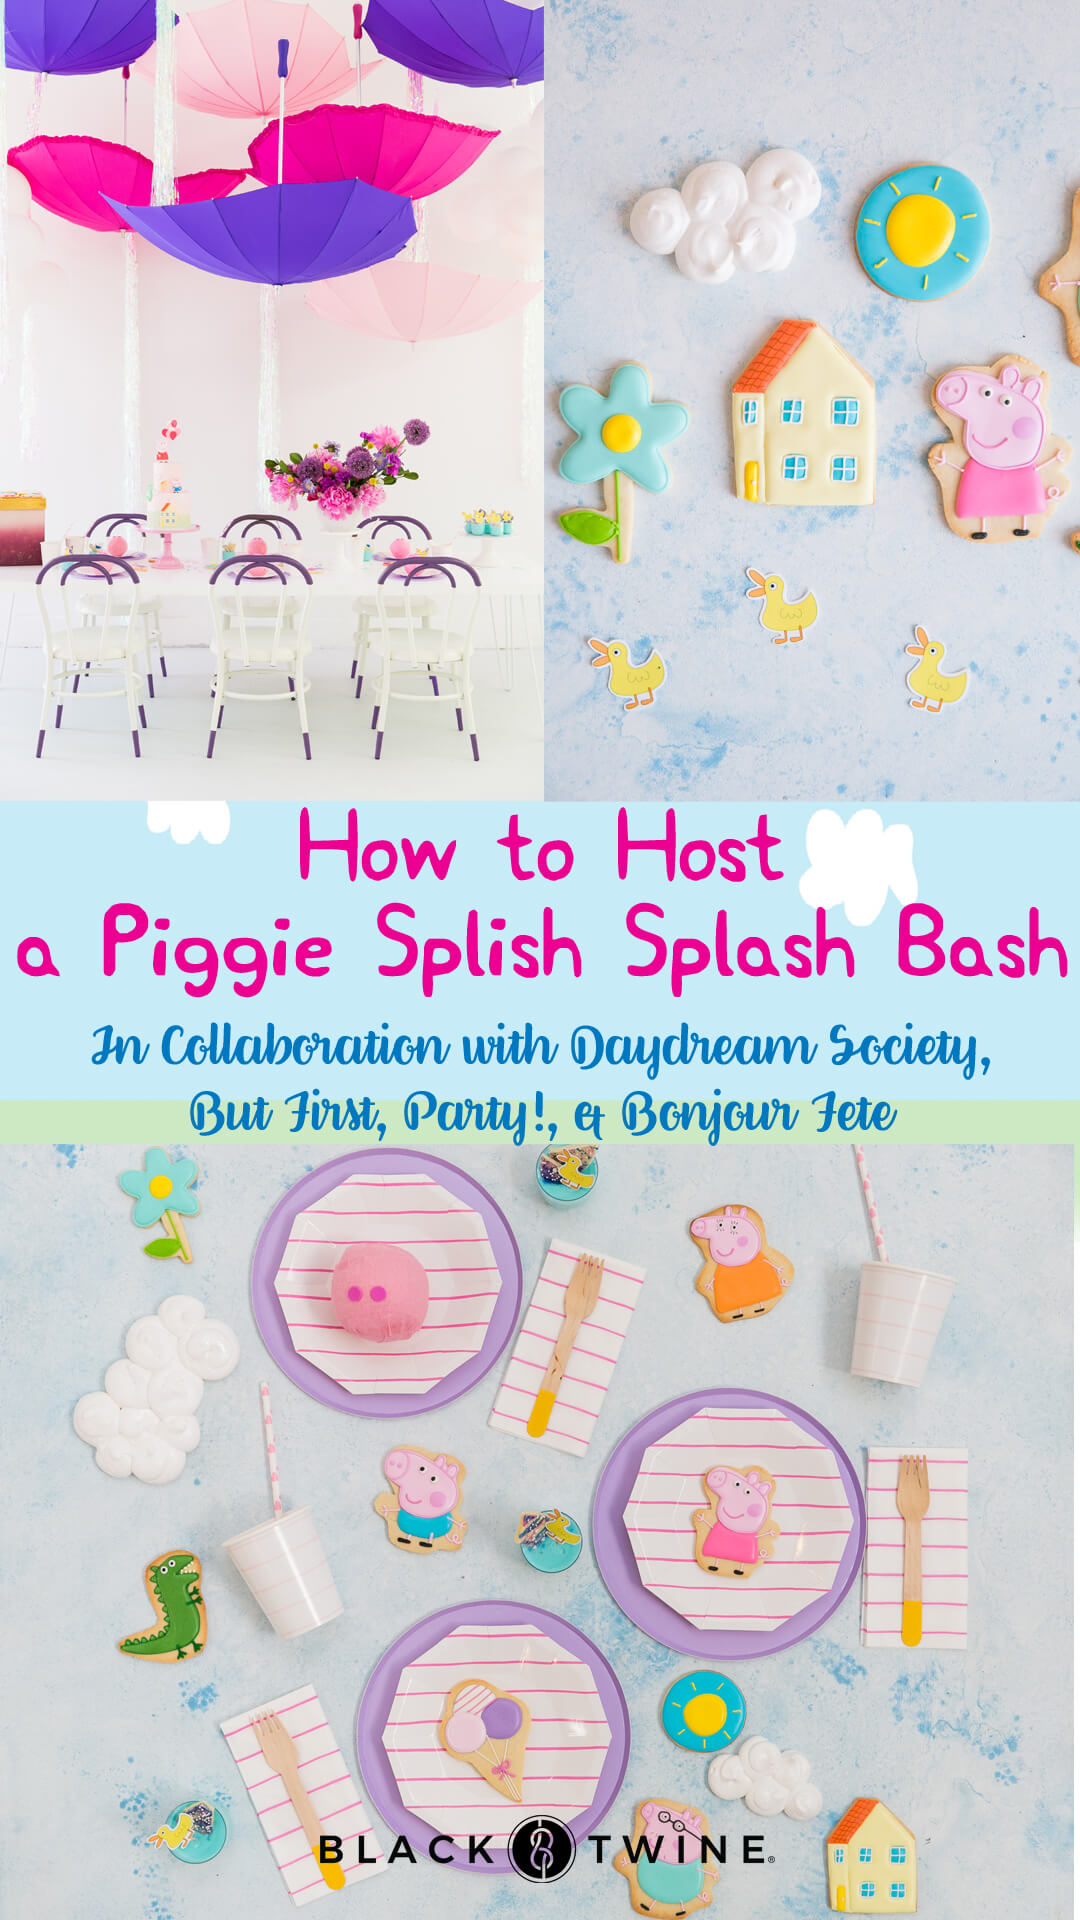 Tablescape, Place Setting, Peppa Pig Cookies from Piggie Splish Splash Bash In Collaboration with Daydream Society, But First, Party!, & Bonjour Fete